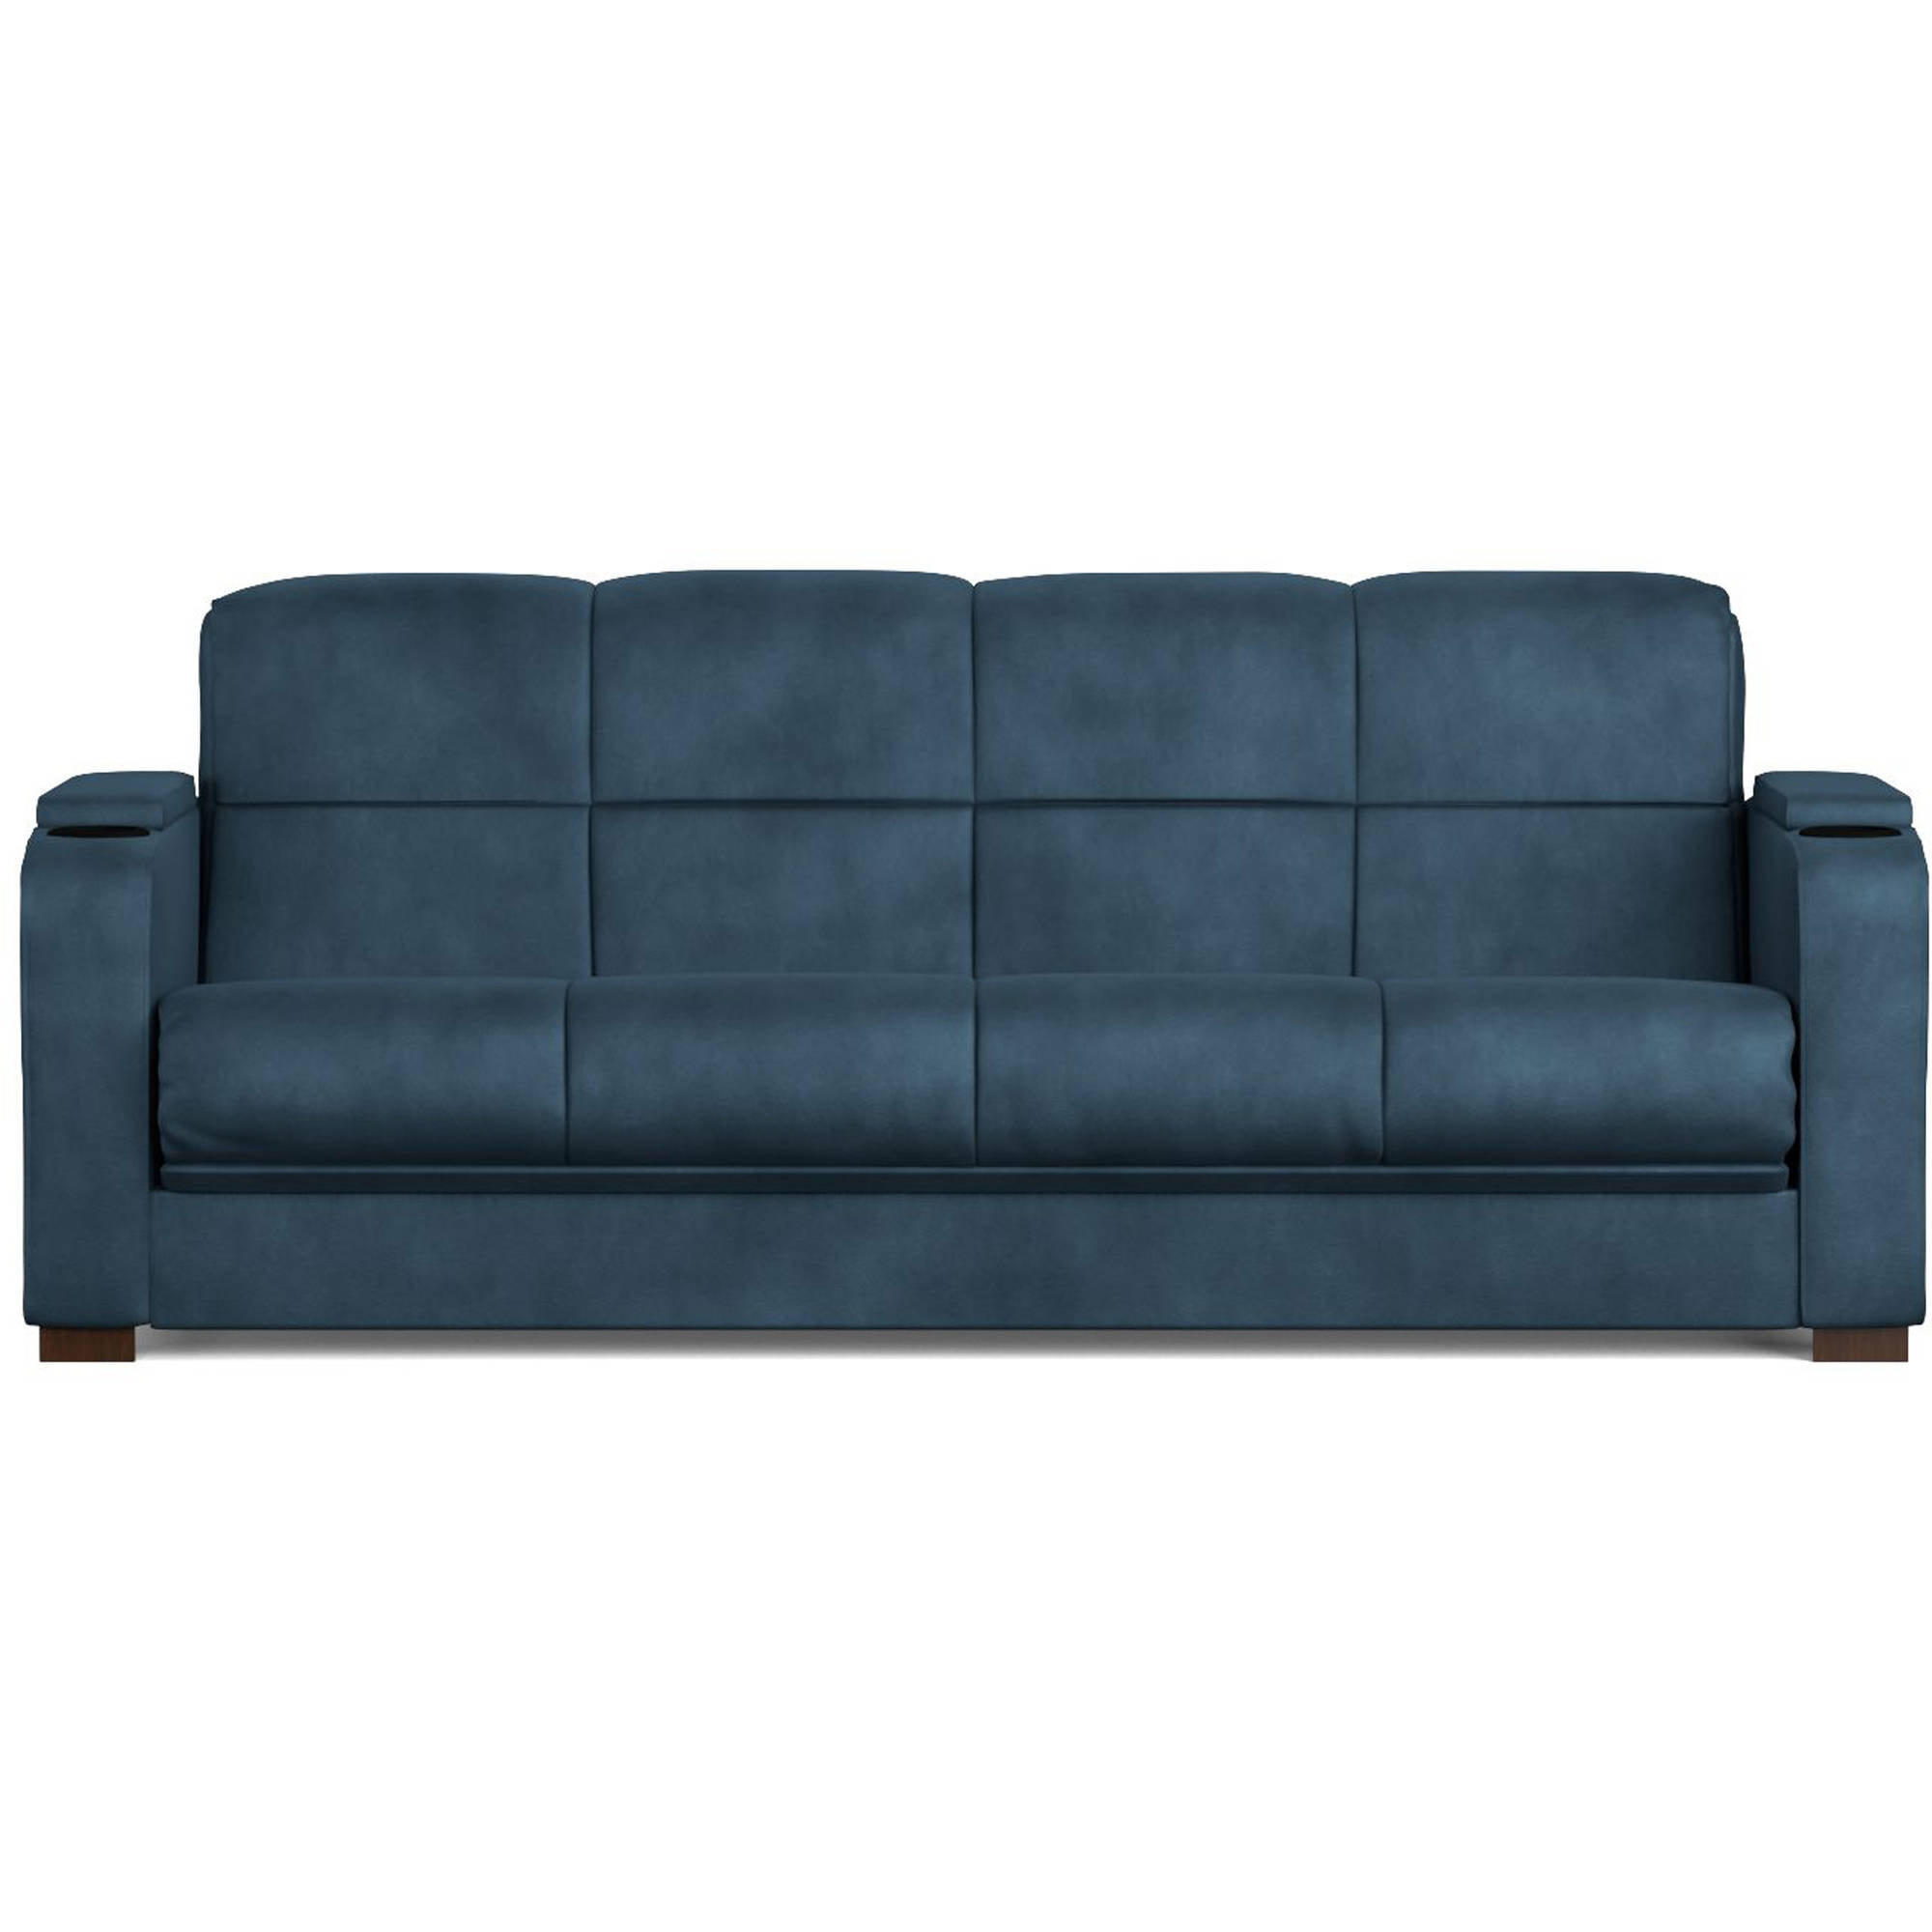 Tyler Storage Arm Convert a Couch and Sofa Bed Microfiber with Set